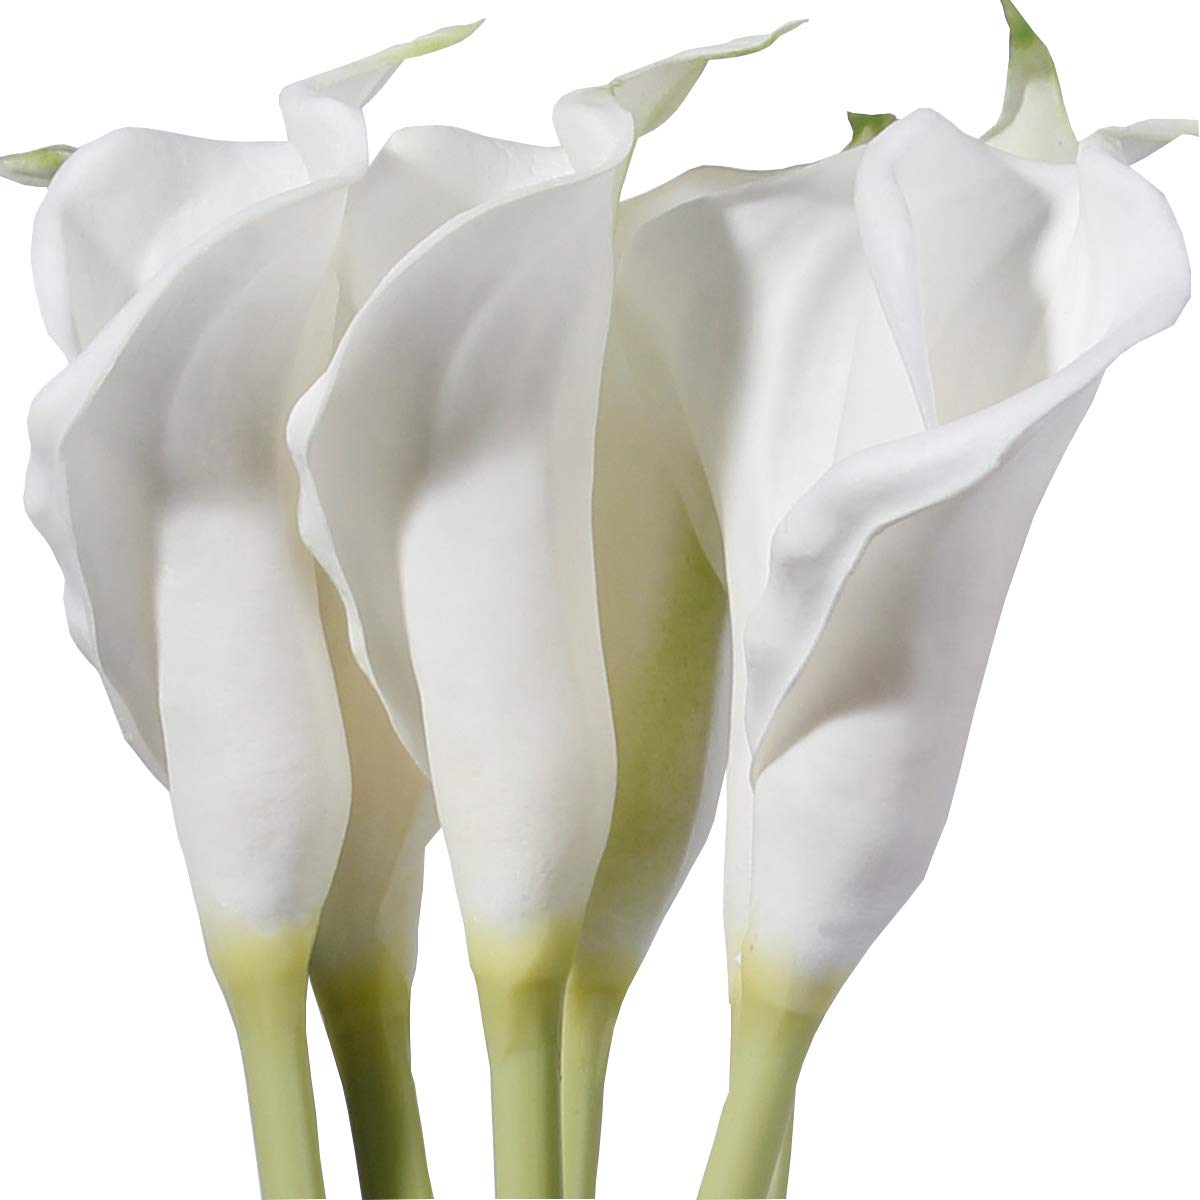 M&A Decor 25'' Large Calla Lily Bulbs 6 PCS White Natural Look Artificial Lillies Flowers with Long Stem for Wedding Party Tall Vase Table Centerpiece Decoration by M&A Decor